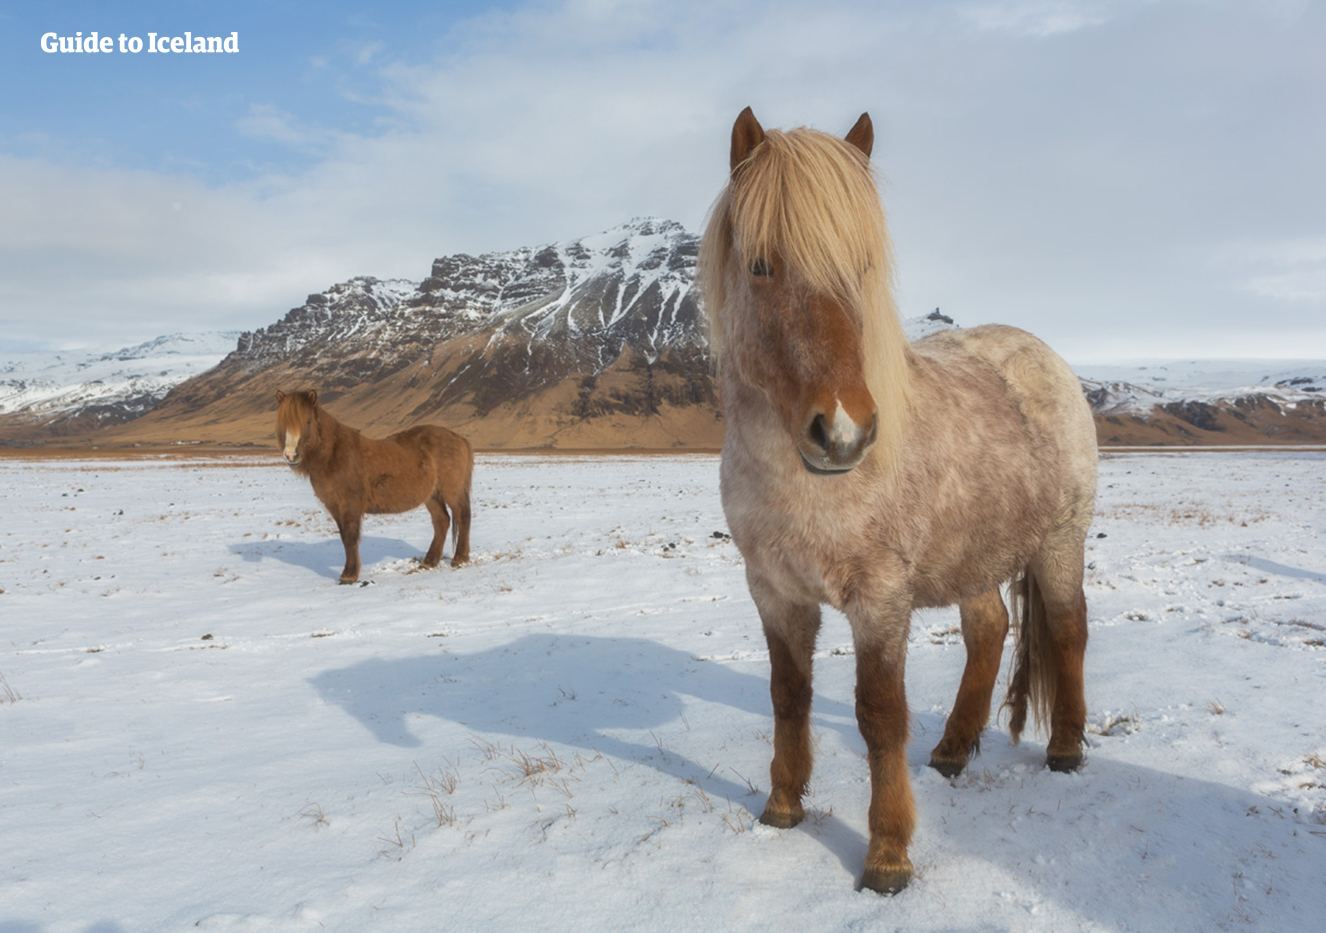 You might spot a few Icelandic horses on your winter self-drive tour.